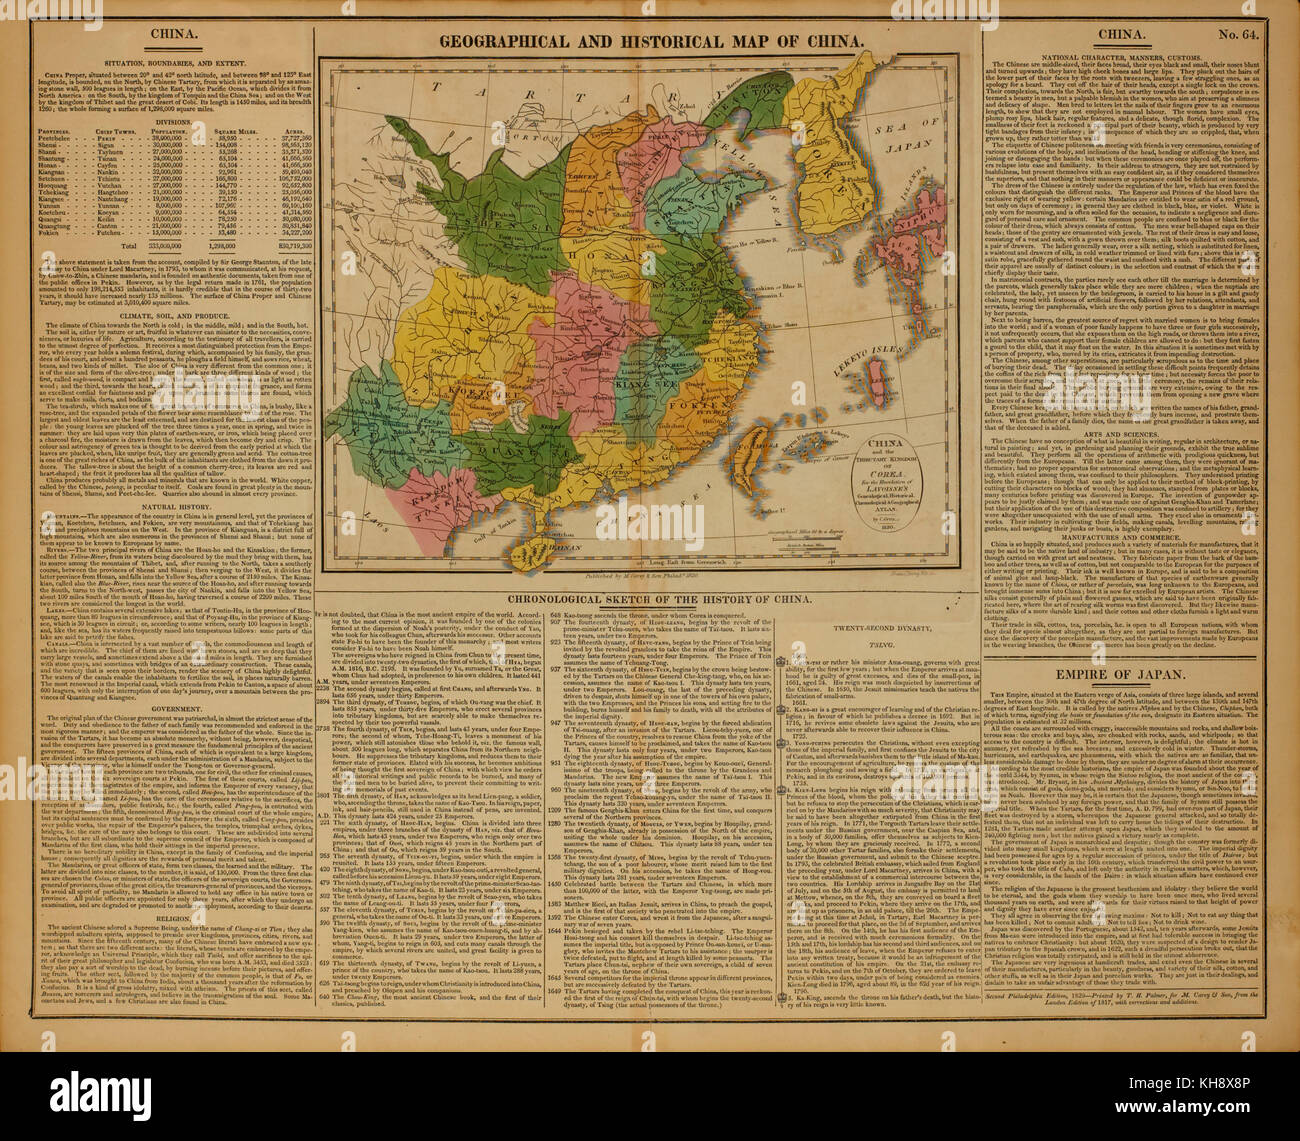 Geographical and Historical Map of China, 1820 - Stock Image